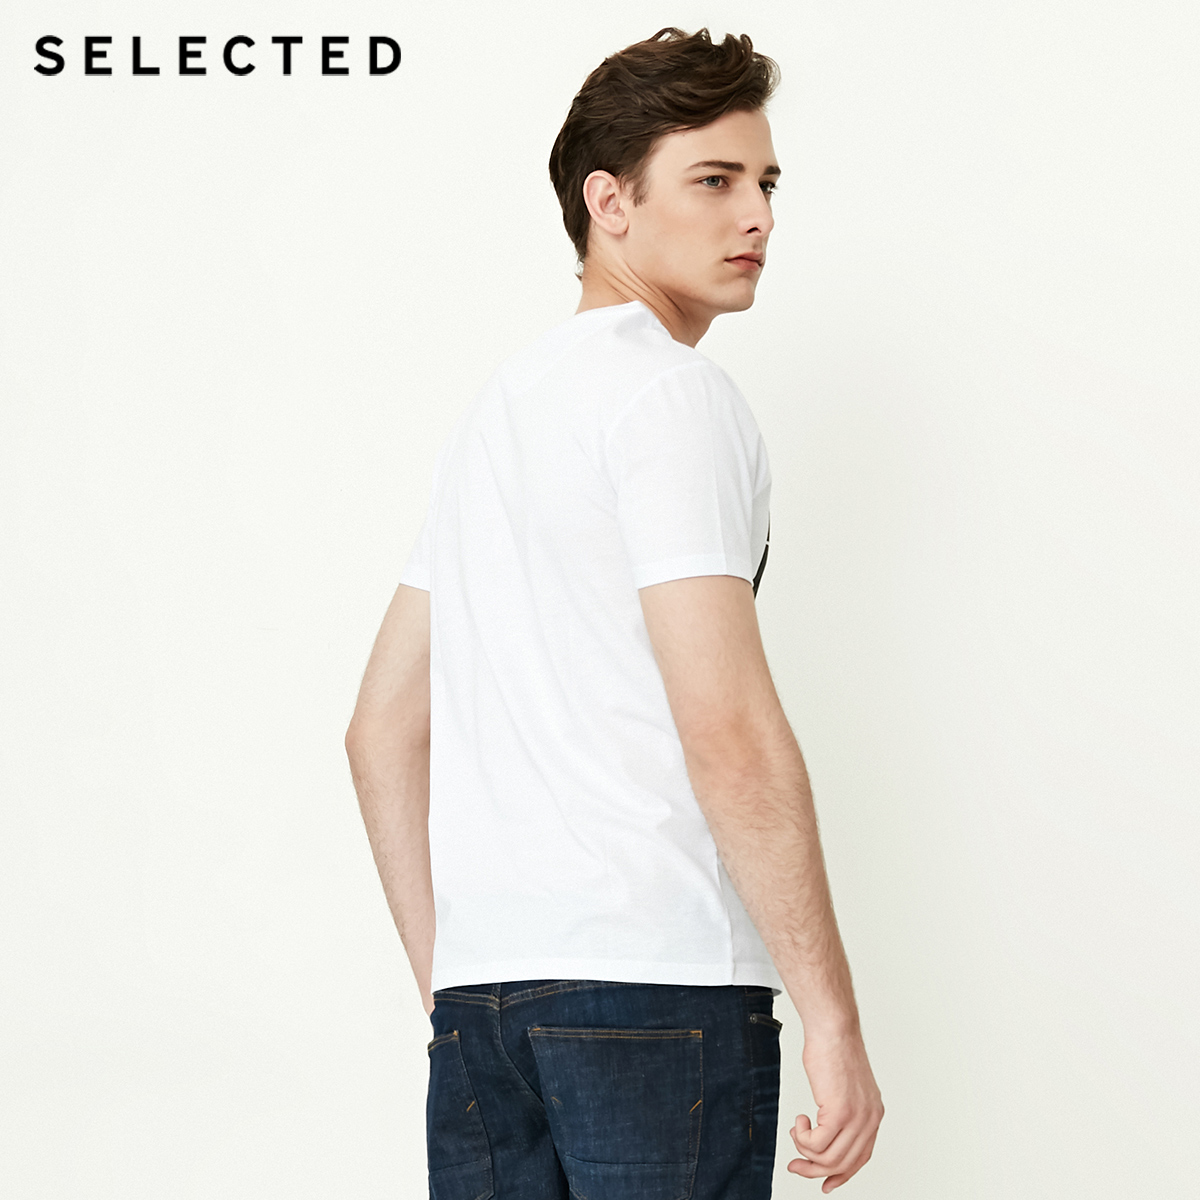 SELECTED Spring amp Summer Men T Shirts O Neck Printed T shirt Men Tee Shirt 4182T4628 in T Shirts from Men 39 s Clothing